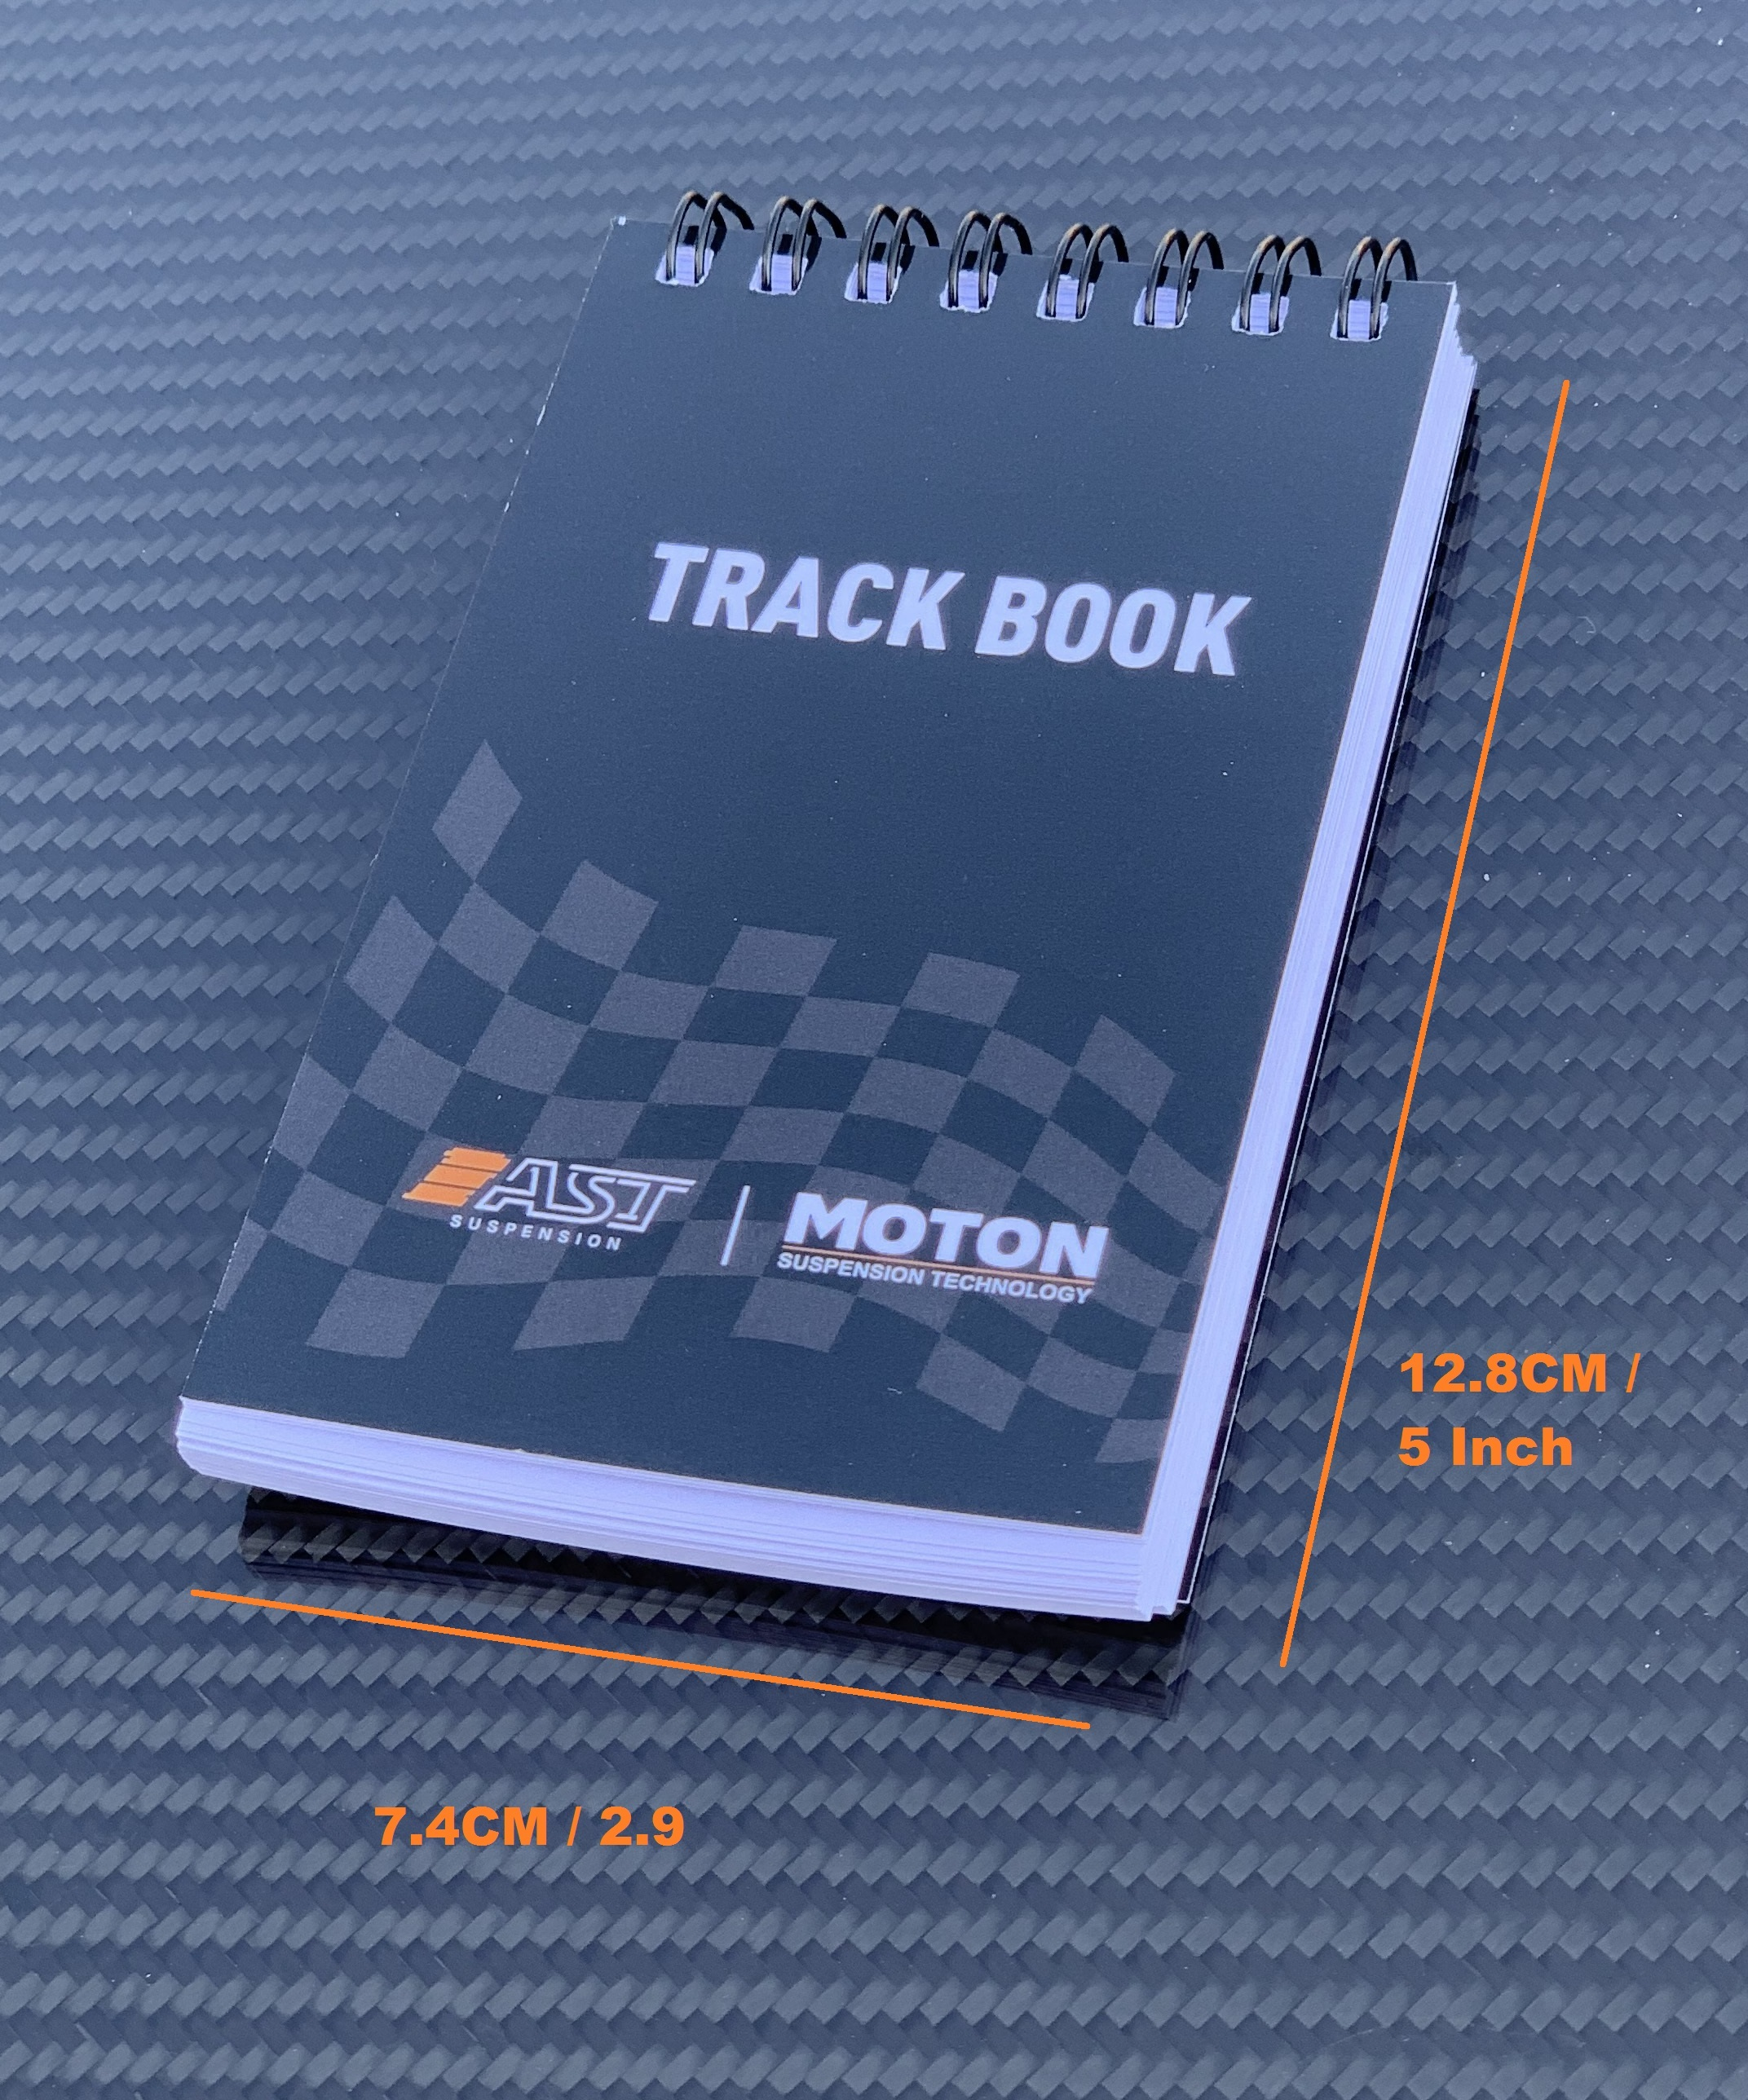 Trackbook AST and MOTON suspension